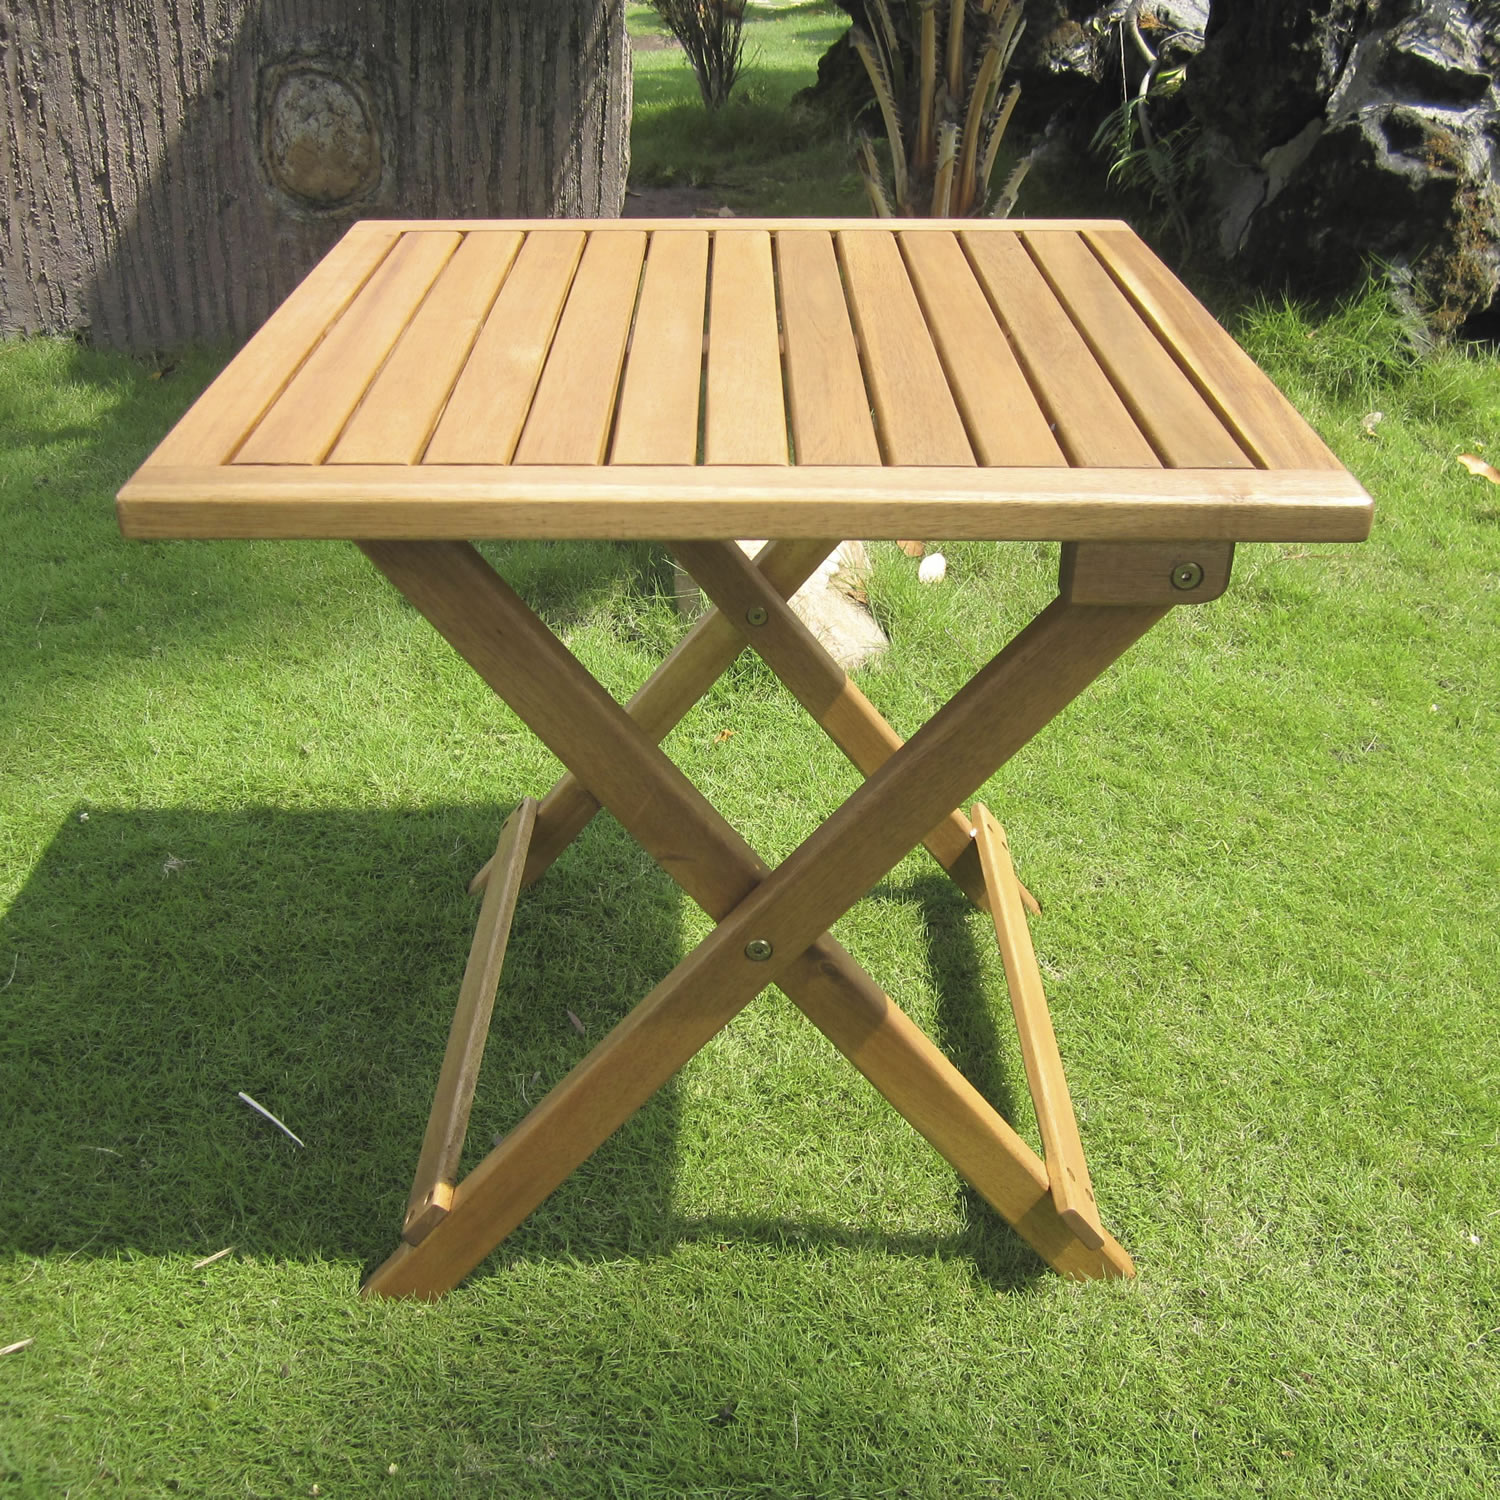 the lightweight tables are easy to move. the garden table should have ATZEGPD